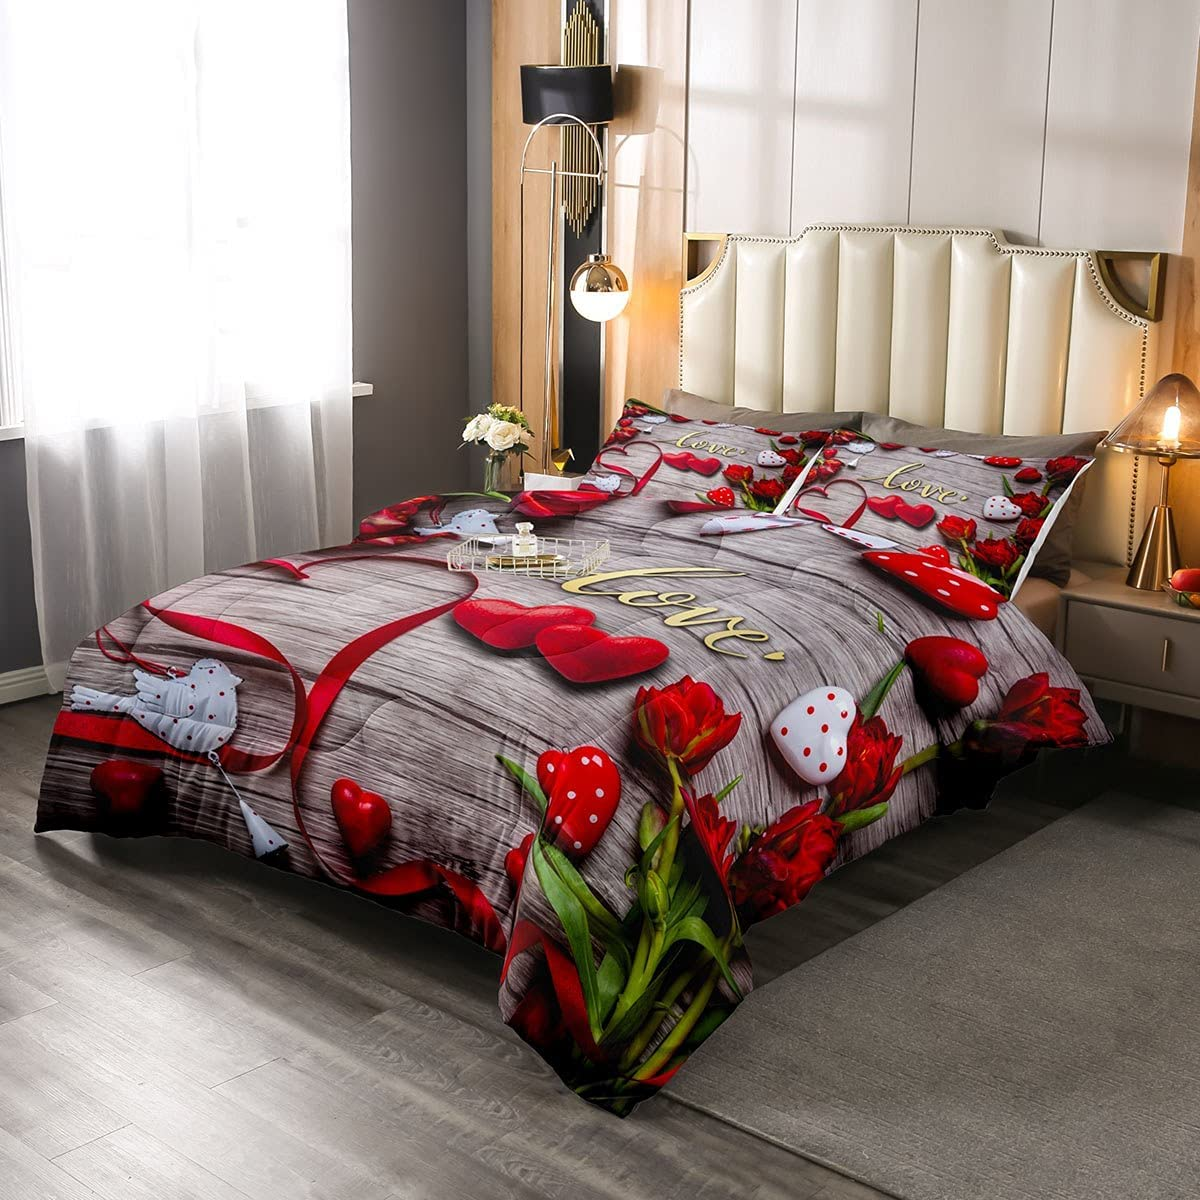 Erosebridal Red Floral Comforter Set Rustic Bedding Style Popular brand in the world S National products Chic